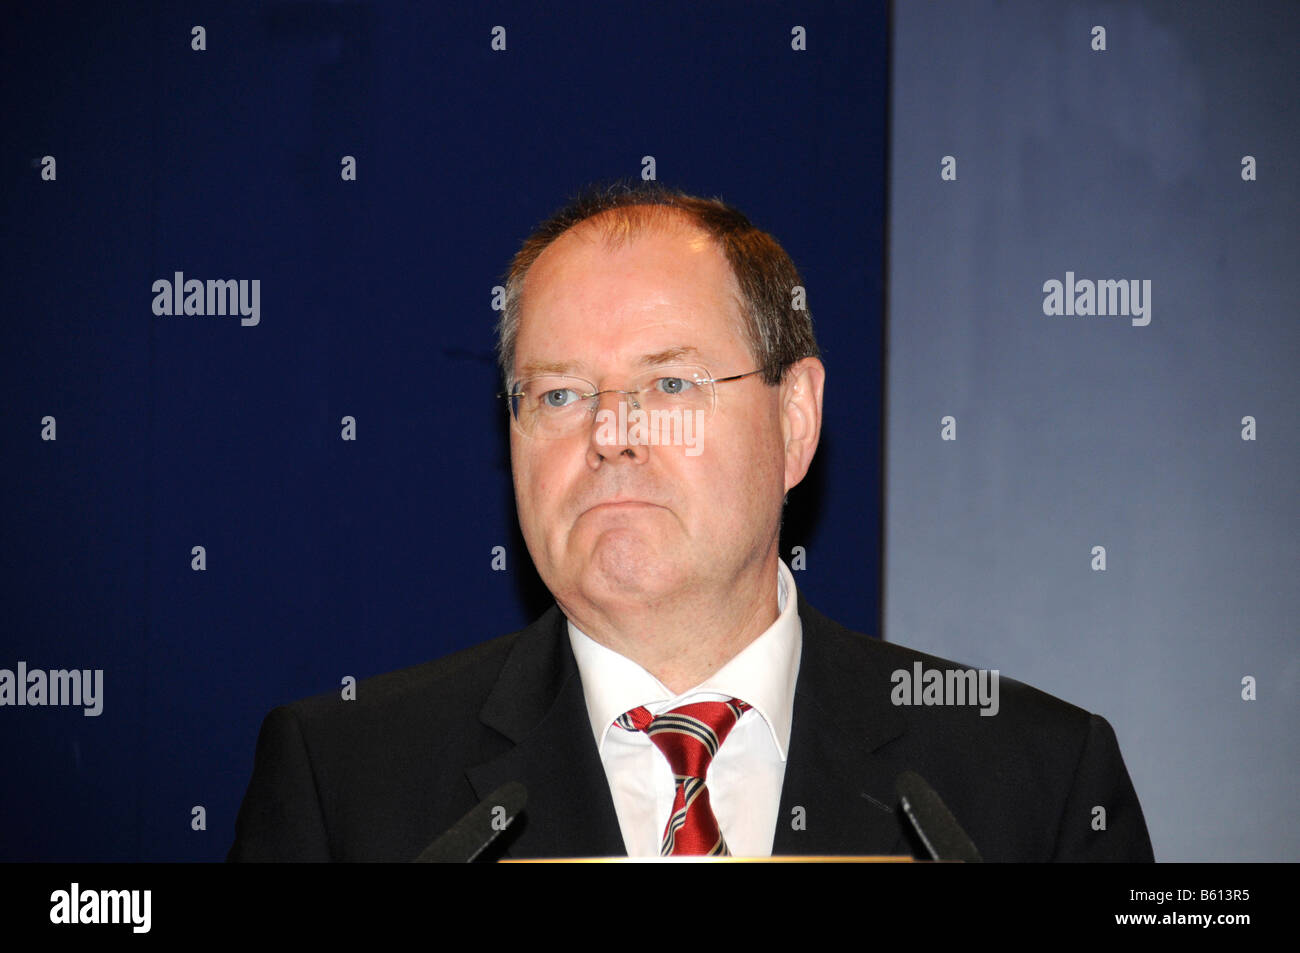 Peer Steinbrueck, Federal Finance Minister, SPD party - Stock Image